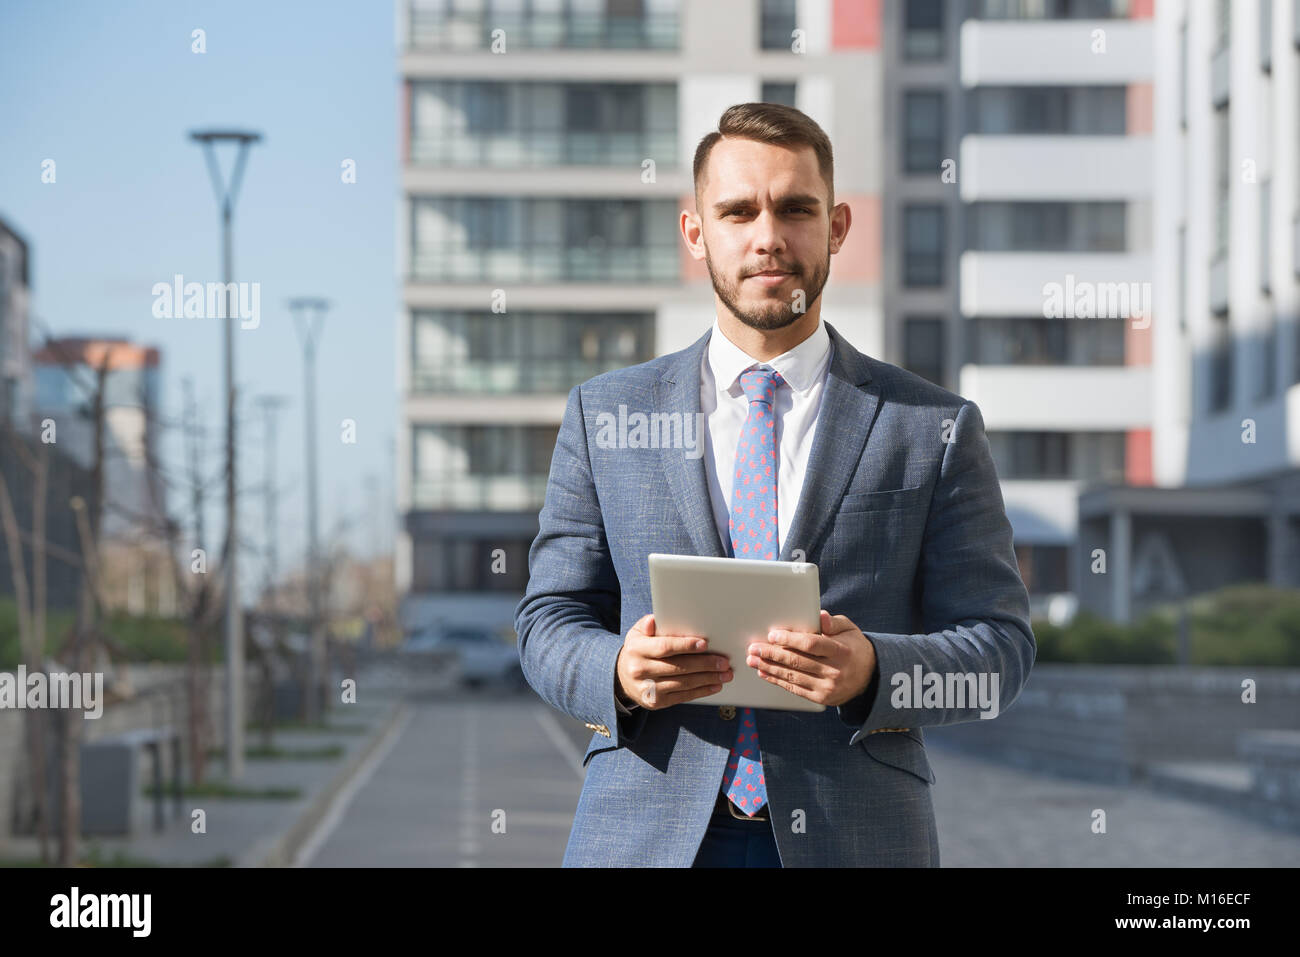 Businessman or real estate agent with tablet computer against new building - Stock Image